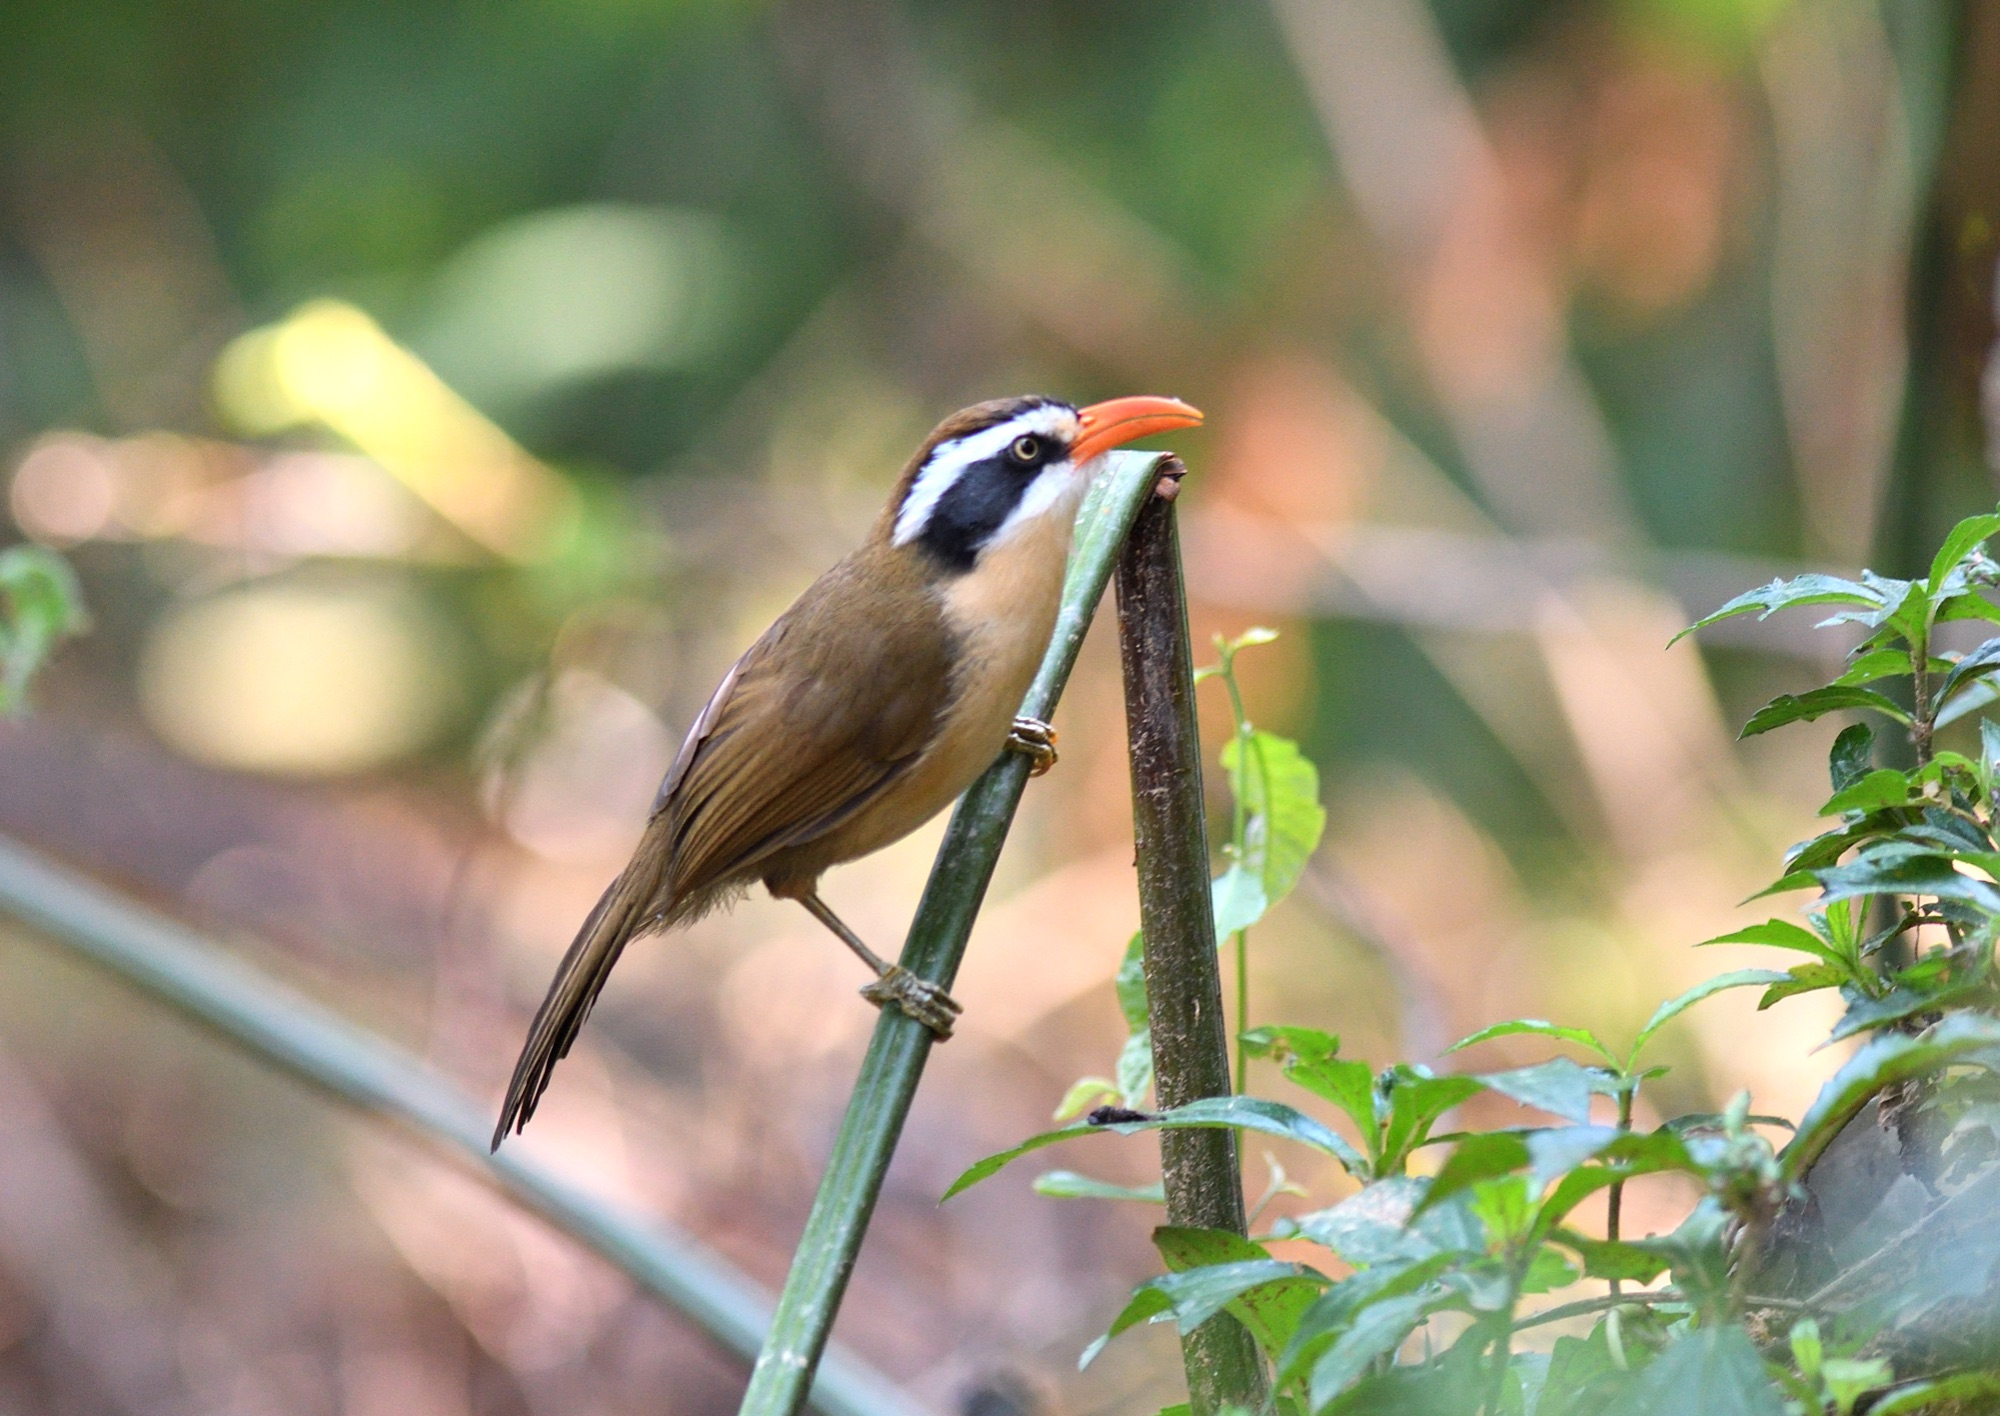 coral-billed scimitar-babbler